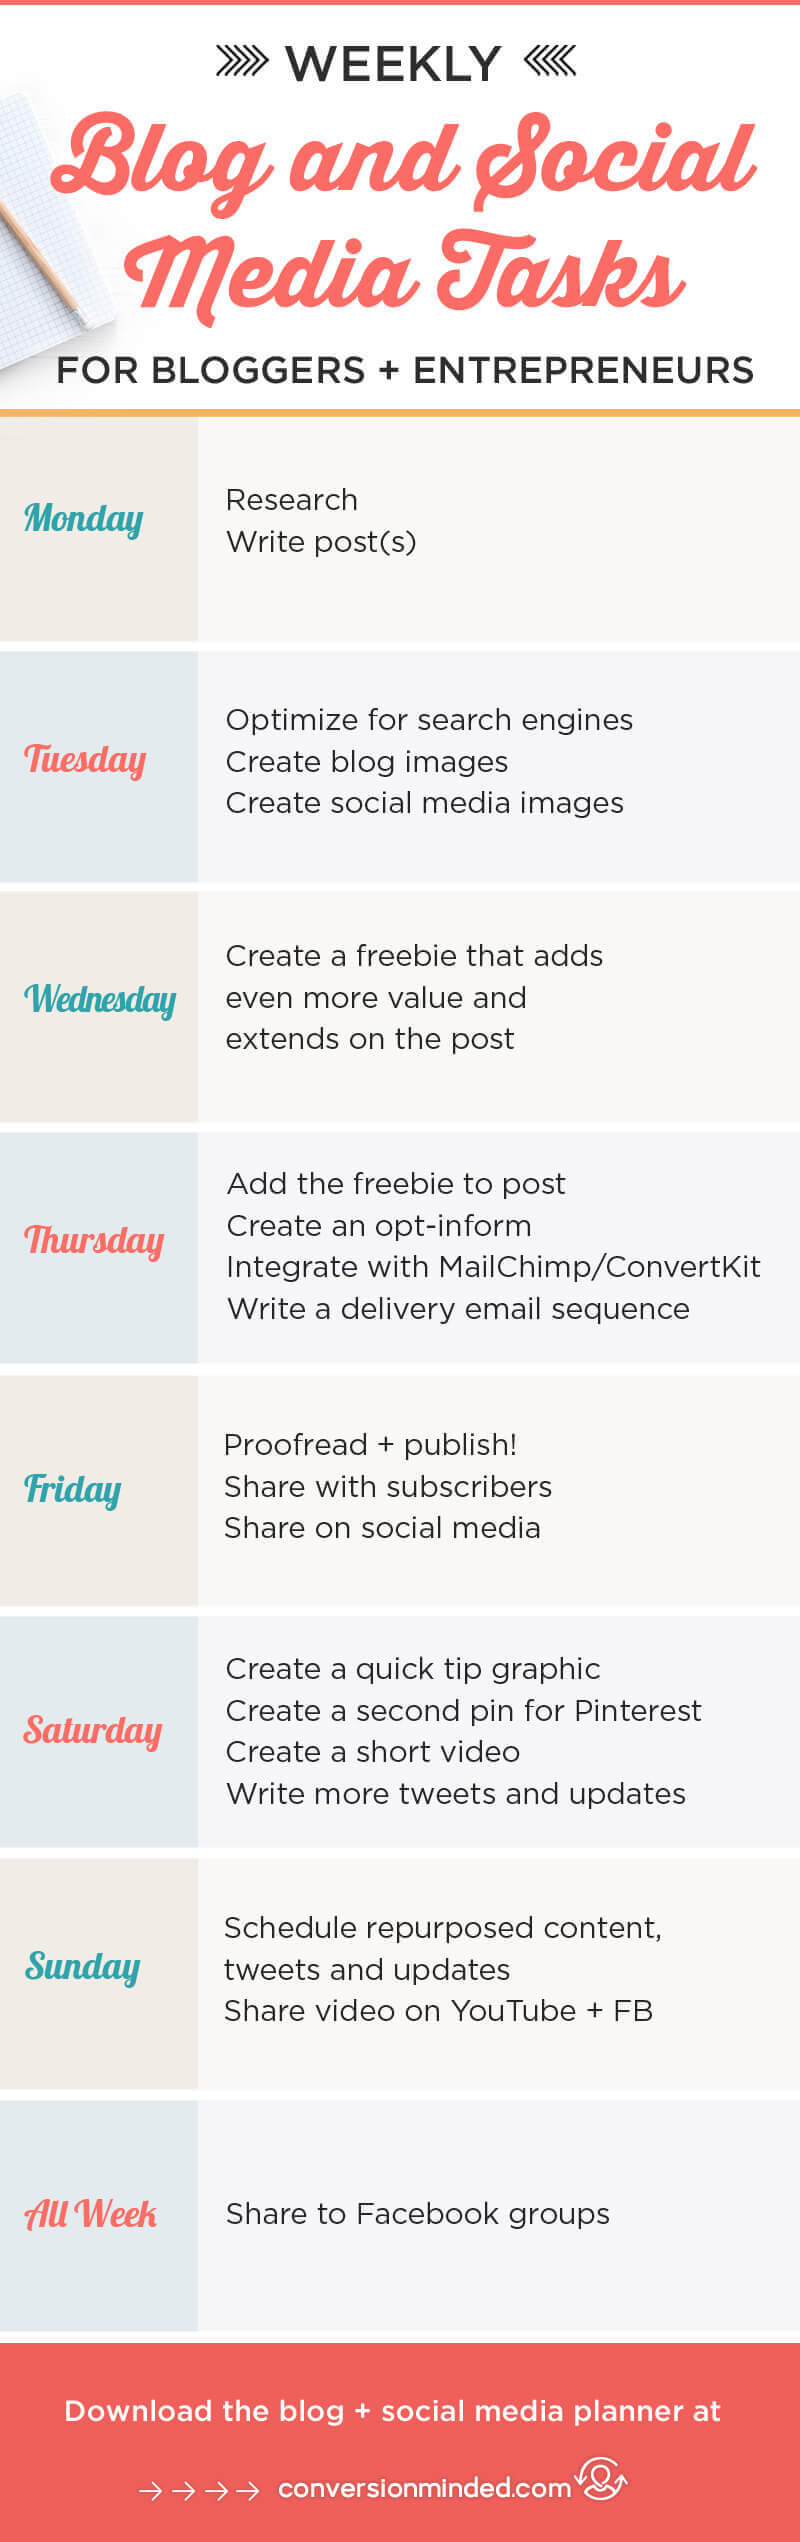 7-Day Social Media Plan for Your Blog (Plus a Free Planner)